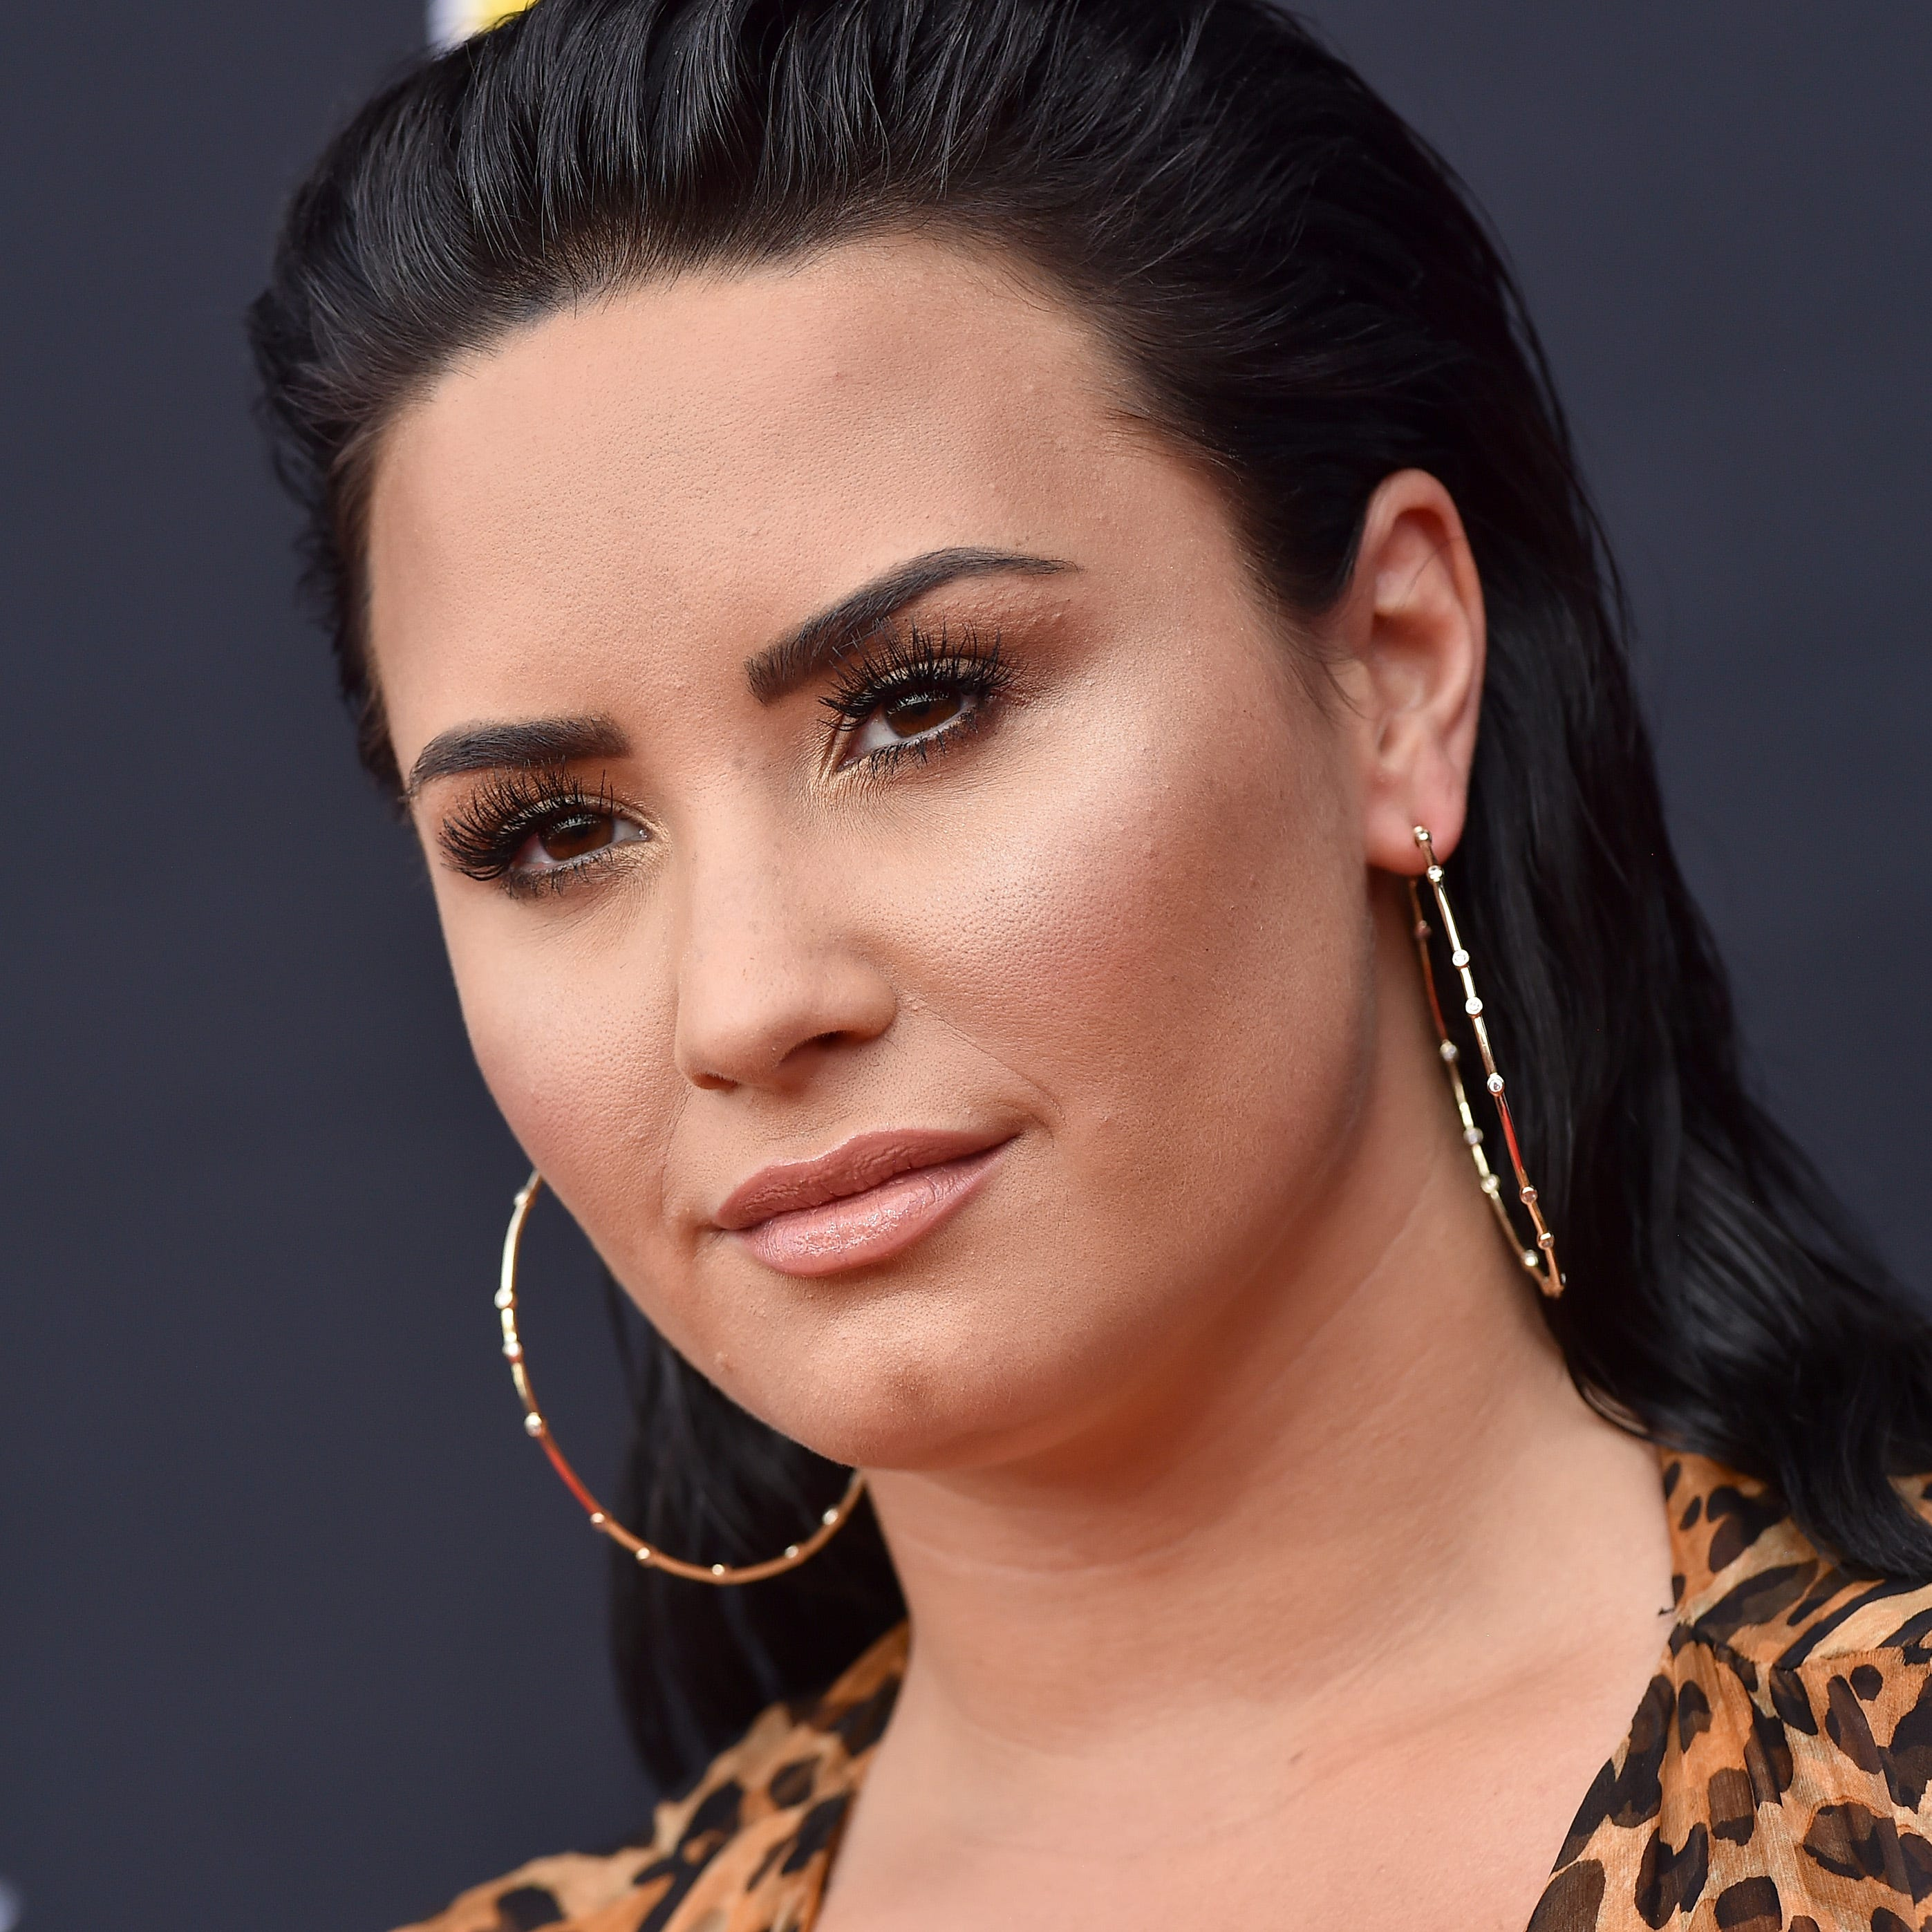 Demi Lovato attends the 2018 Billboard Music Awards on May 20 in Las Vegas.